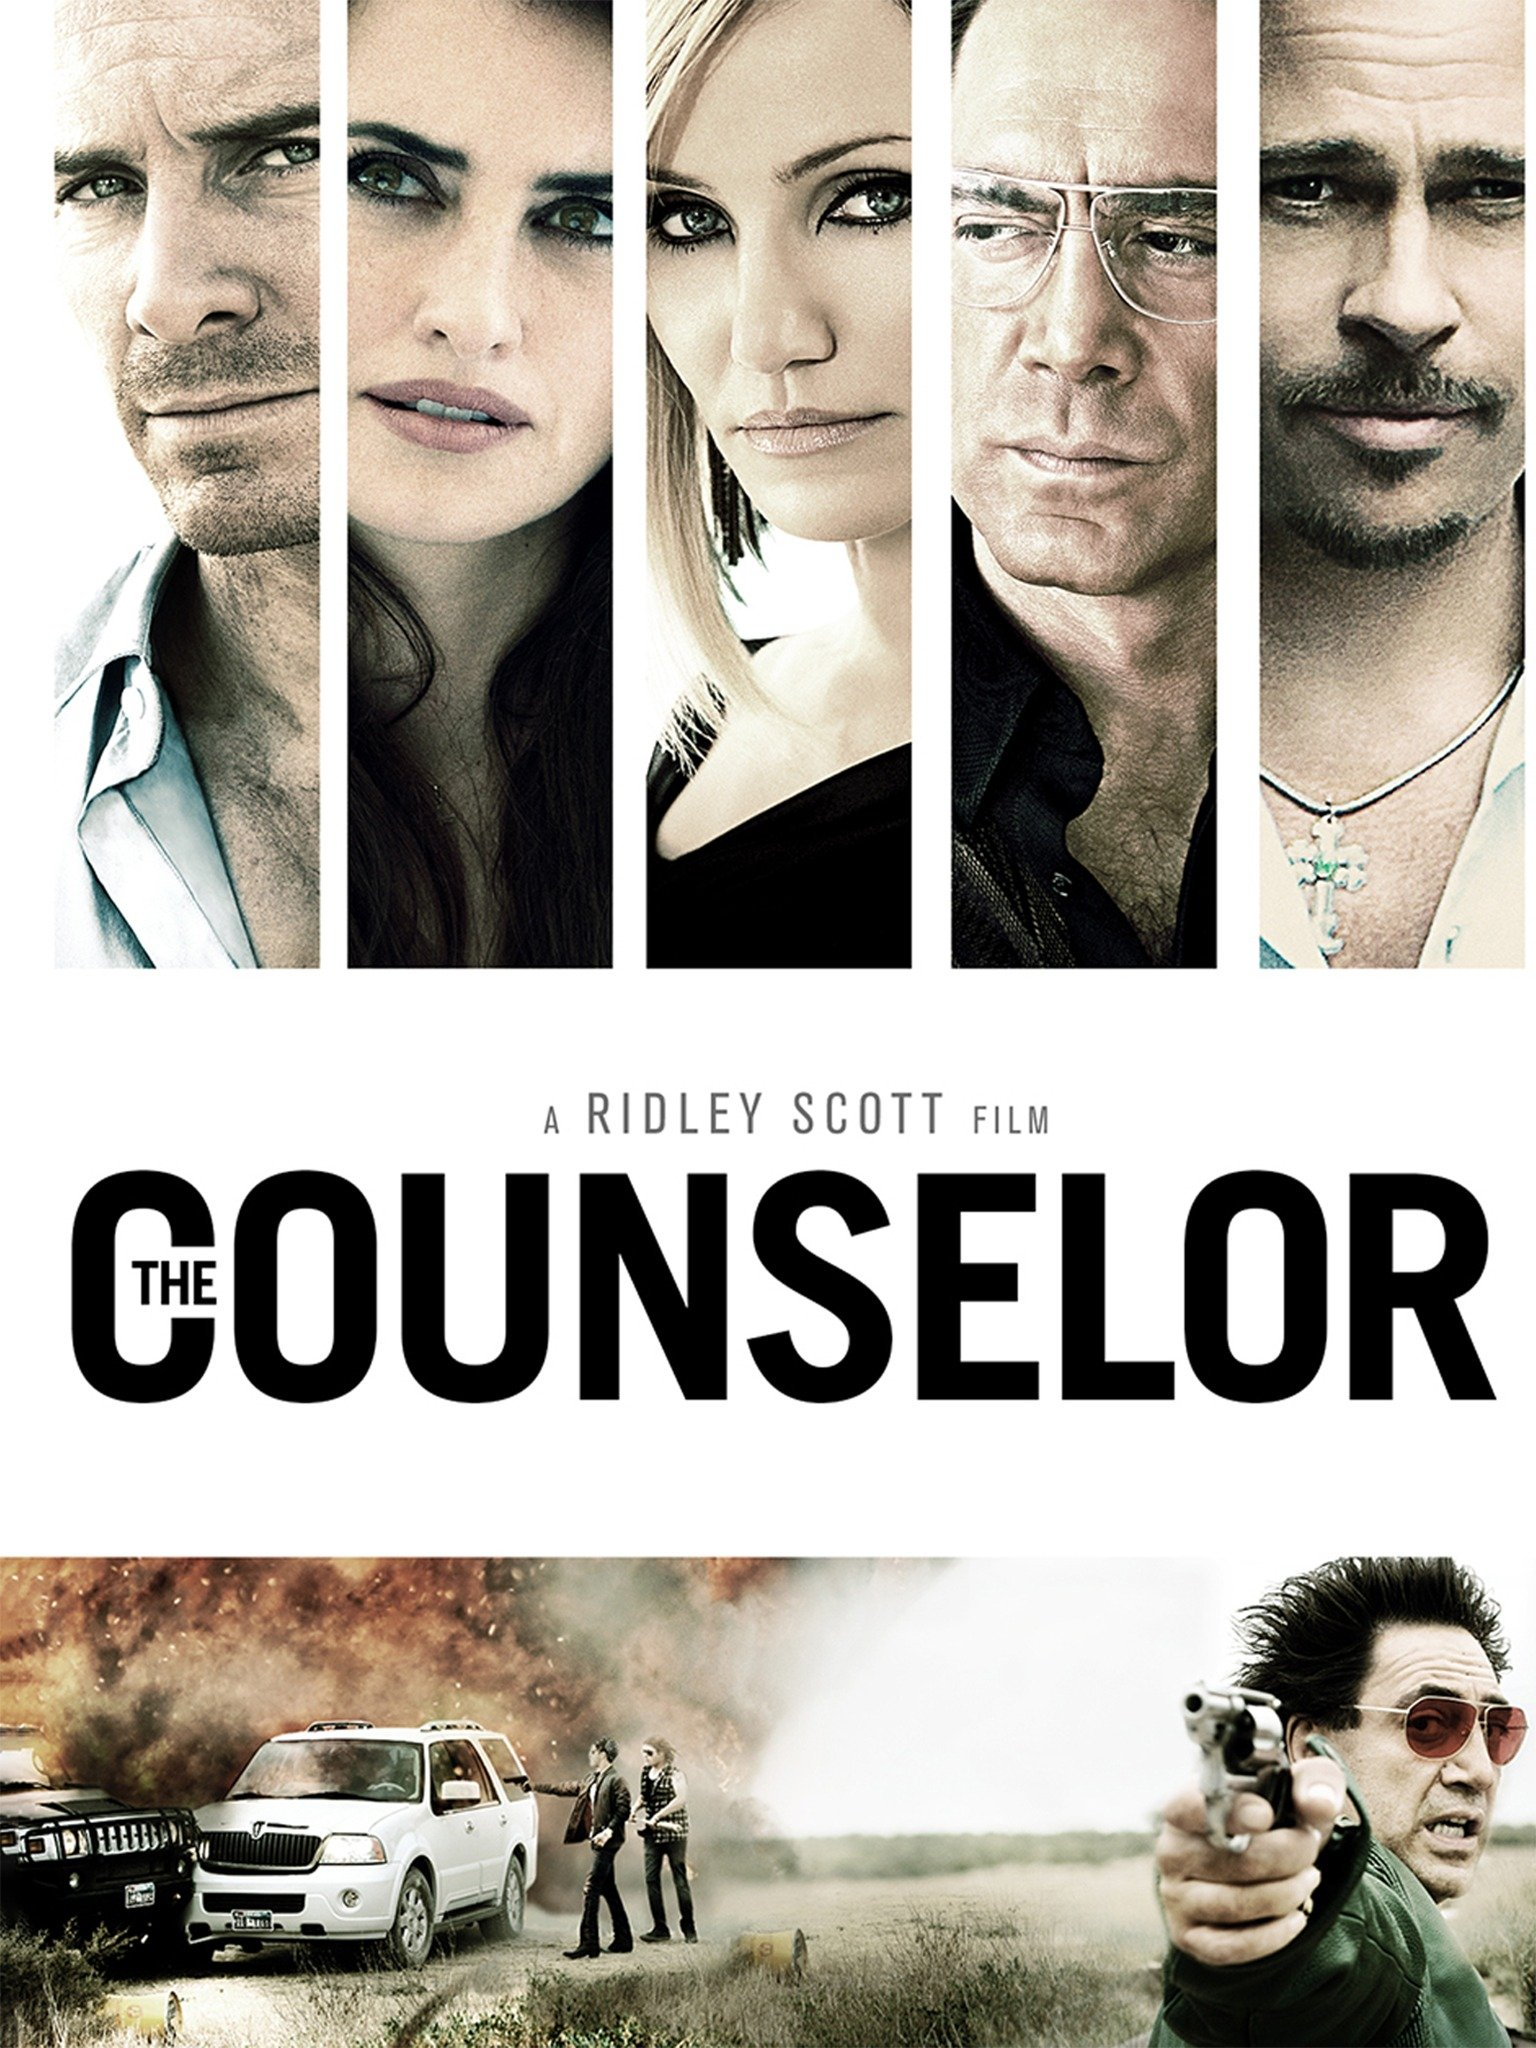 The Counselor 2013 Rotten Tomatoes